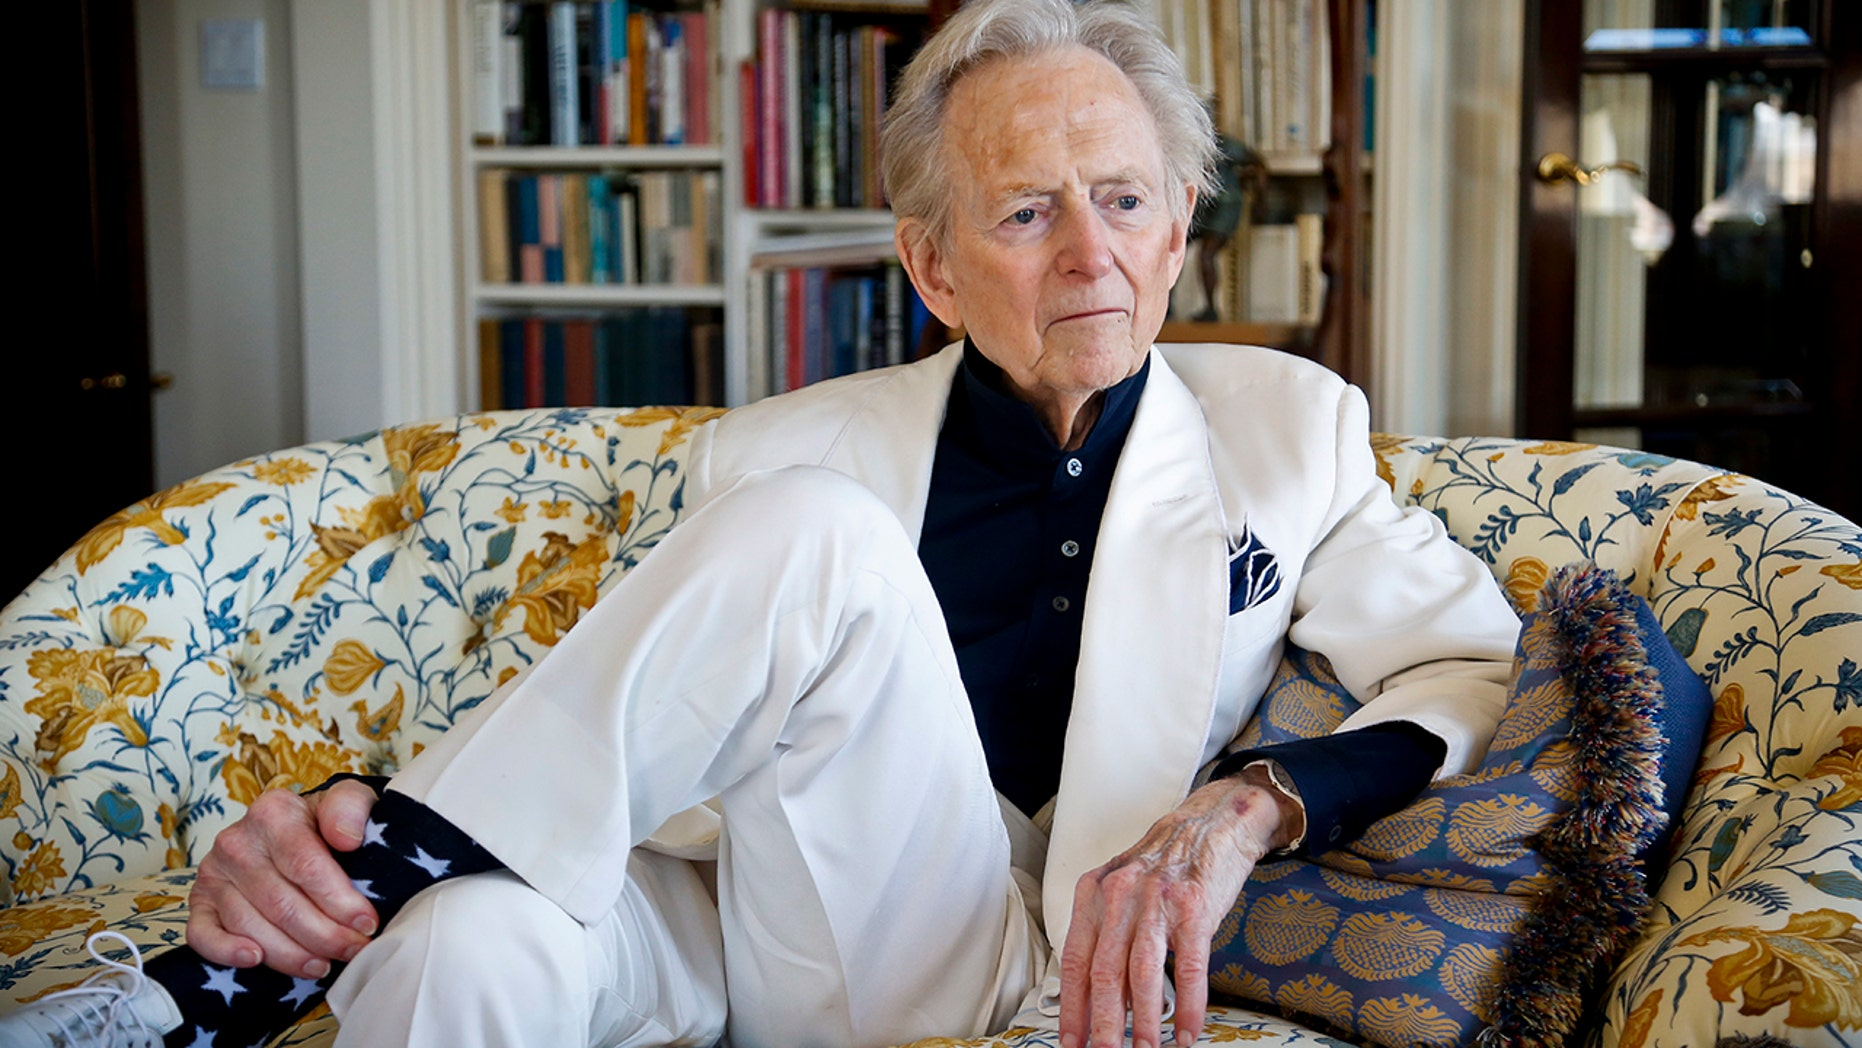 """In this July 26, 2016 file photo, American author and journalist Tom Wolfe, Jr. appears in his living room during an interview about his latest book, """"The Kingdom of Speech,"""" in New York. Wolfe died at a New York City hospital. He was 87."""